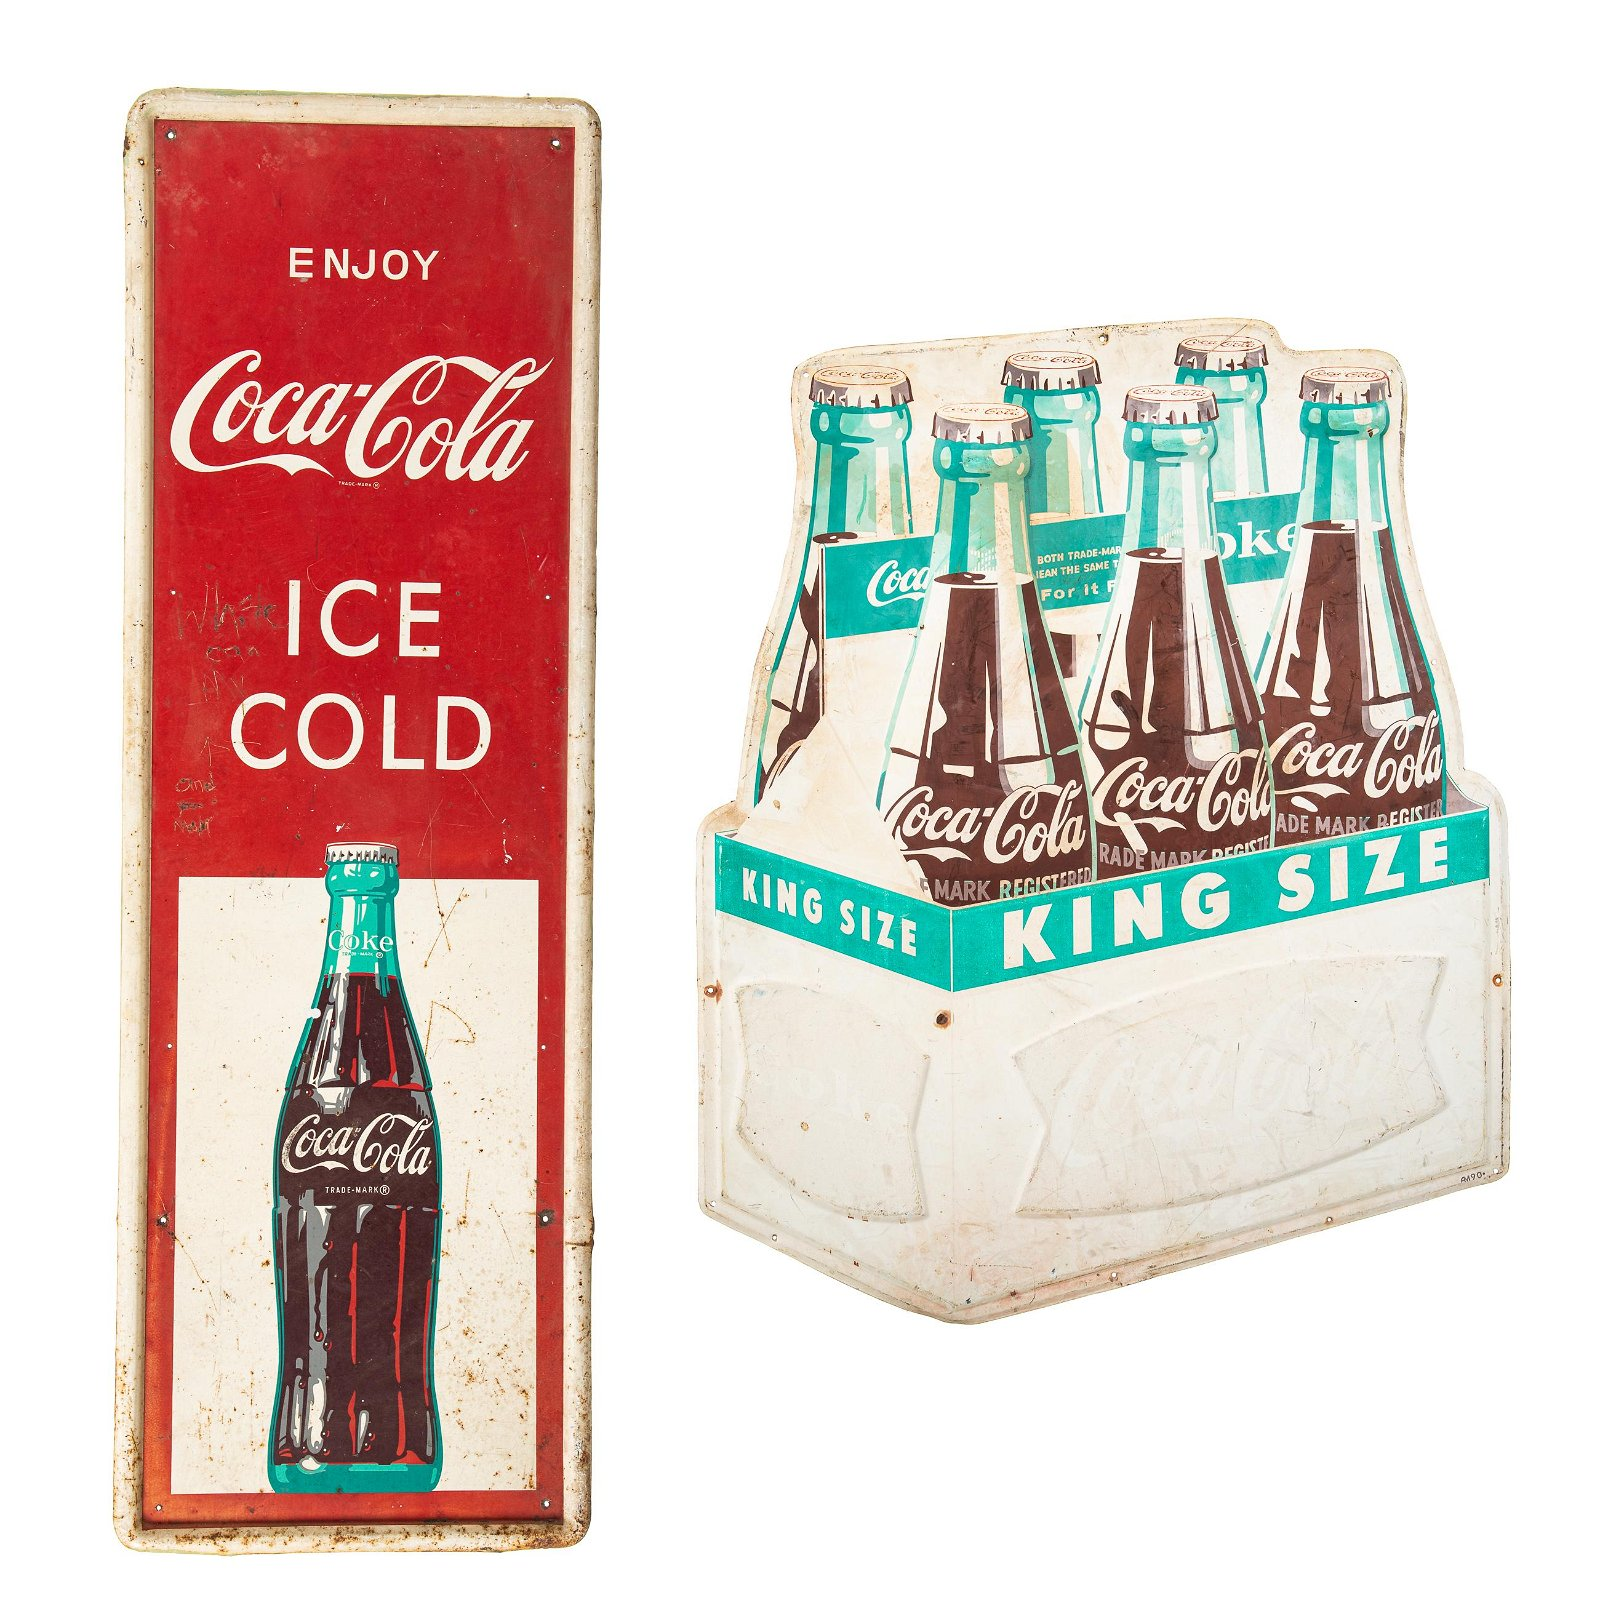 Coca Cola King Size Diecut & Ice Cold Vert. Signs